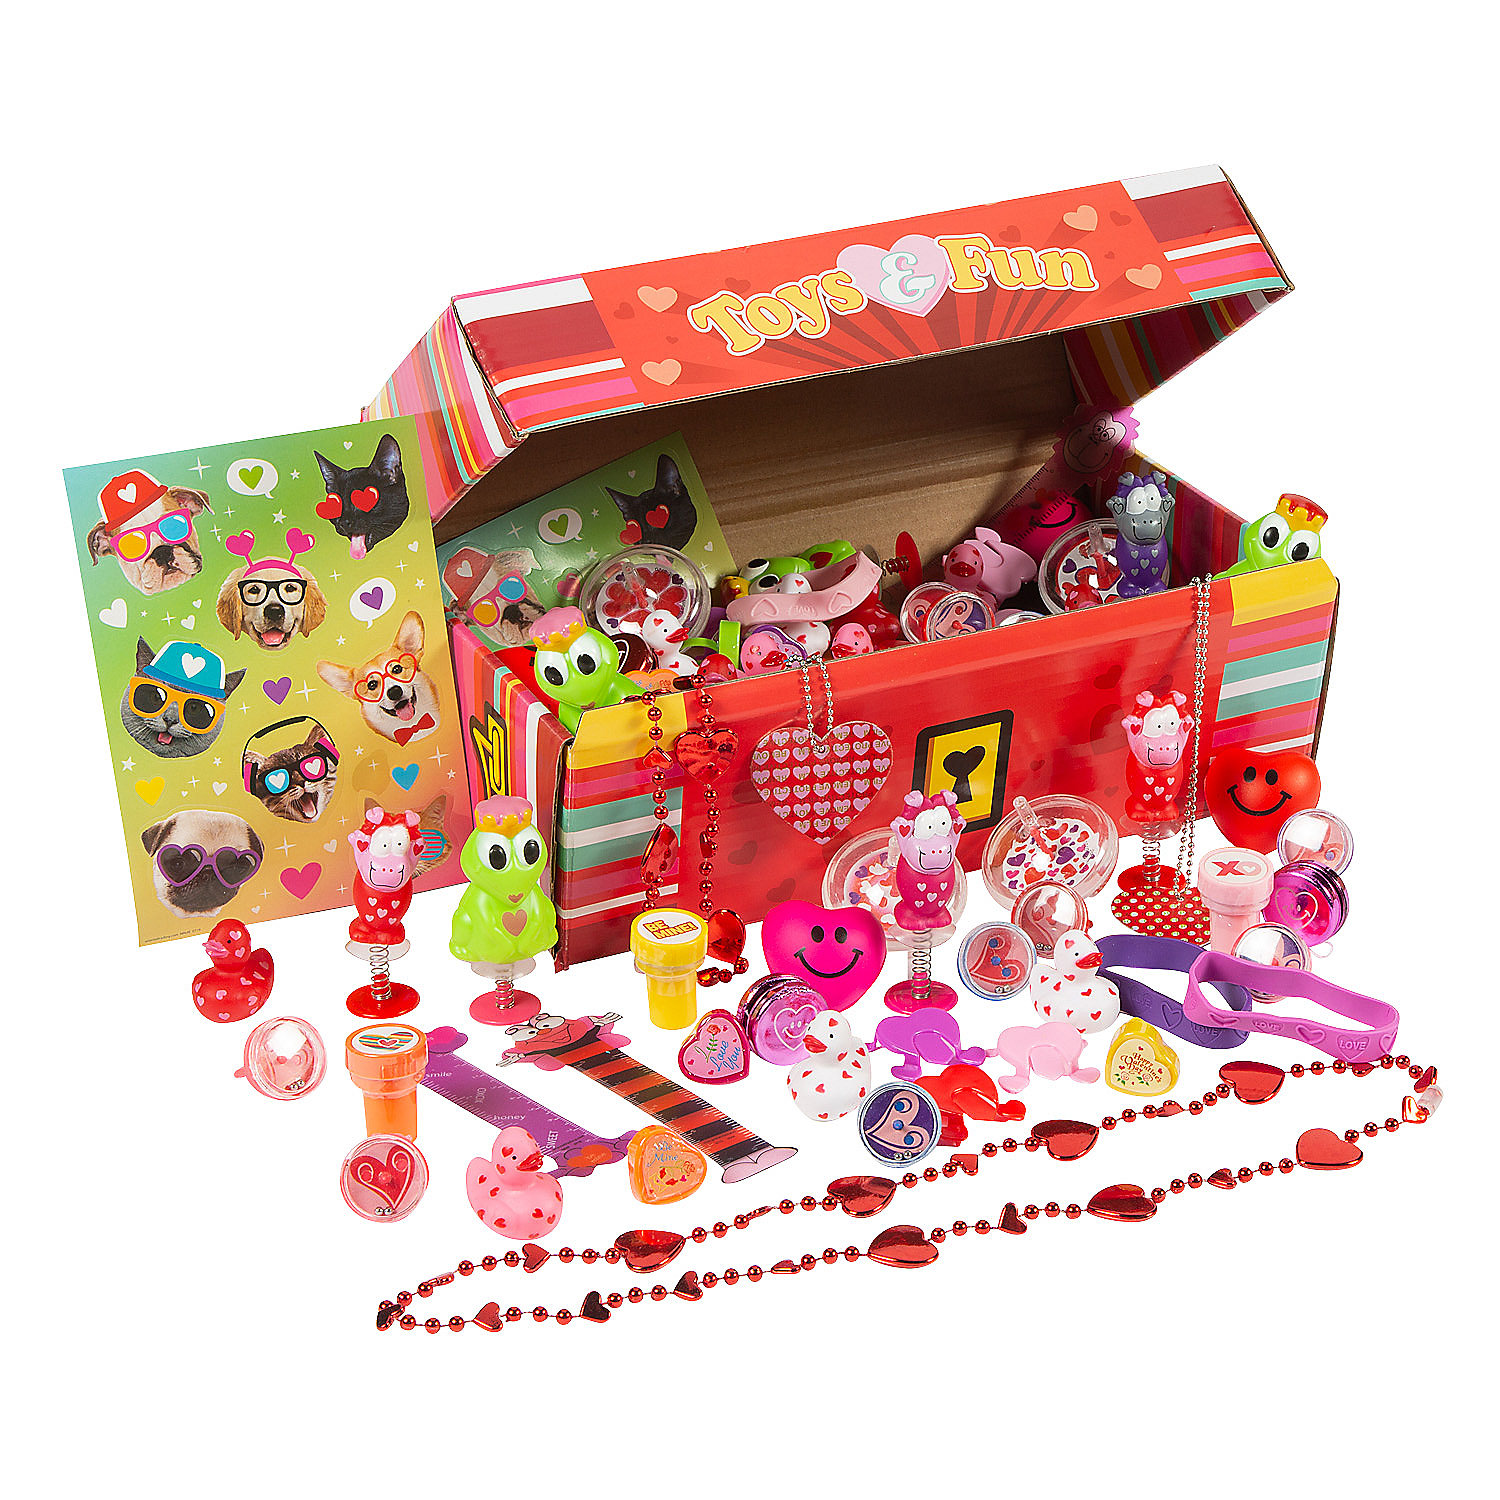 Valentine S Day Toy Prizes : Valentine treasure chest toy assortment oriental trading